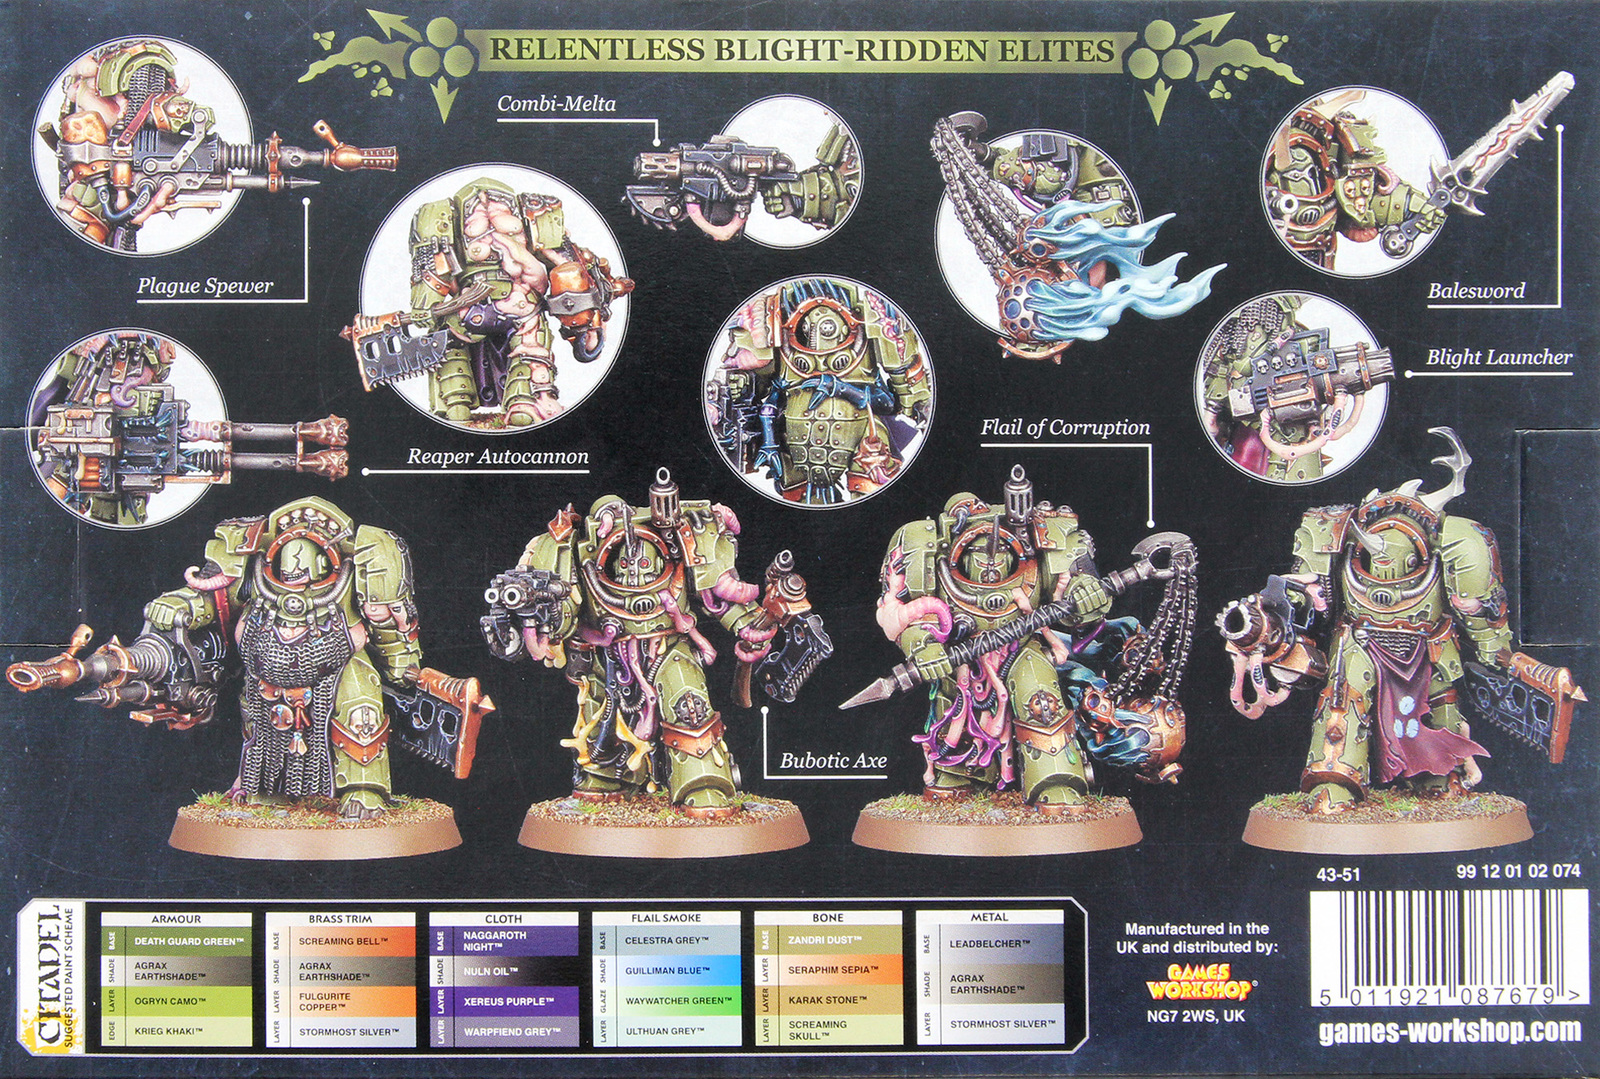 Warhammer 40,000: Death Guard - Blightlord Terminators image